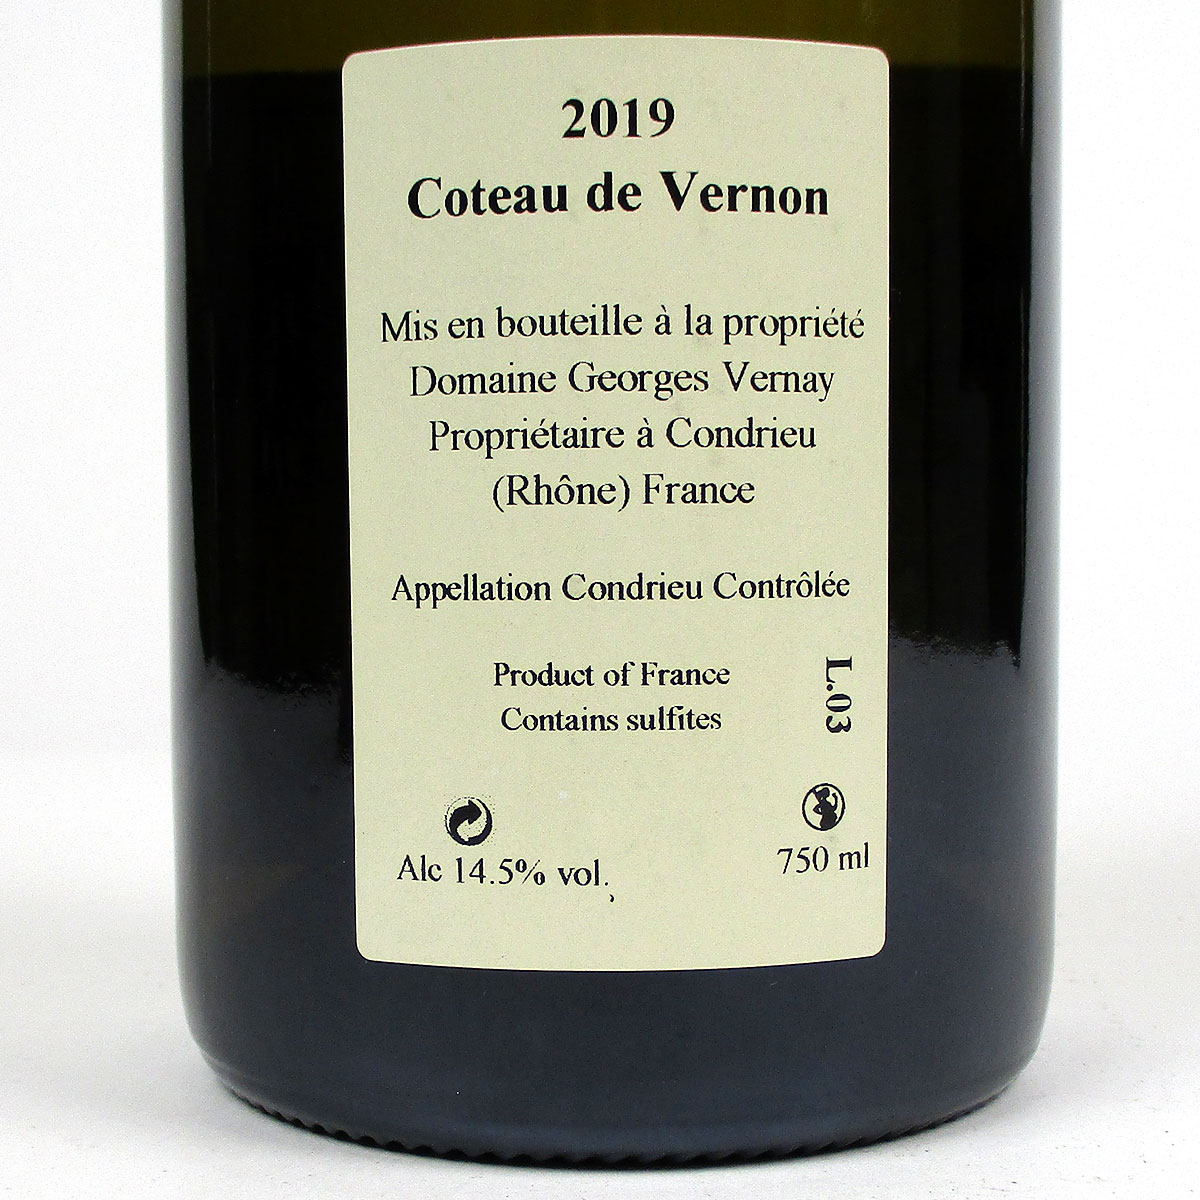 Condrieu: Domaine Georges Vernay 'Coteau de Vernon' 2019 - Bottle Rear Label